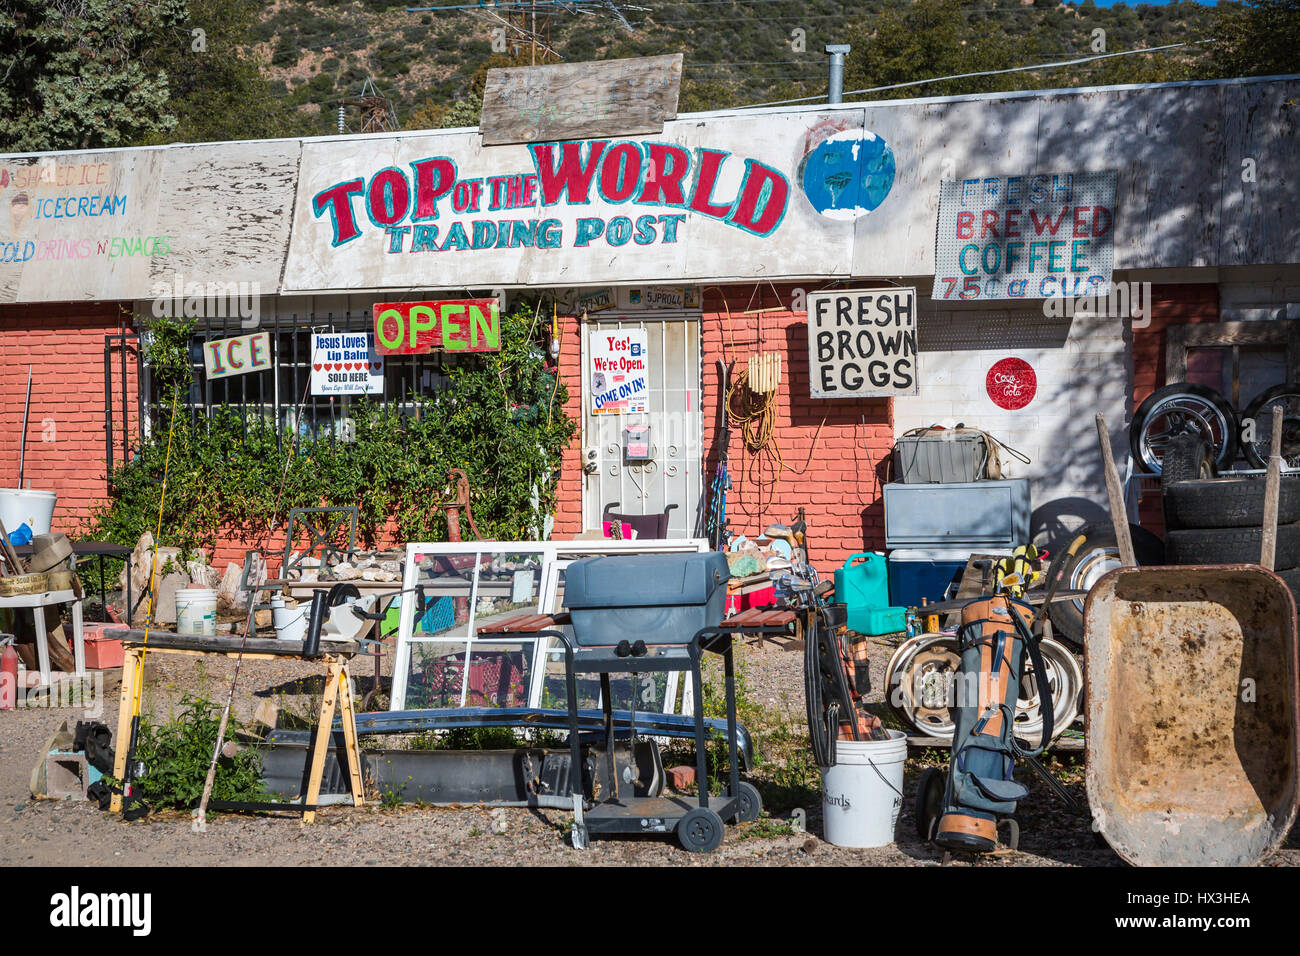 official photos c3008 b24f7 The Top of the World Trading Post store in Miami, Arizona, USA.